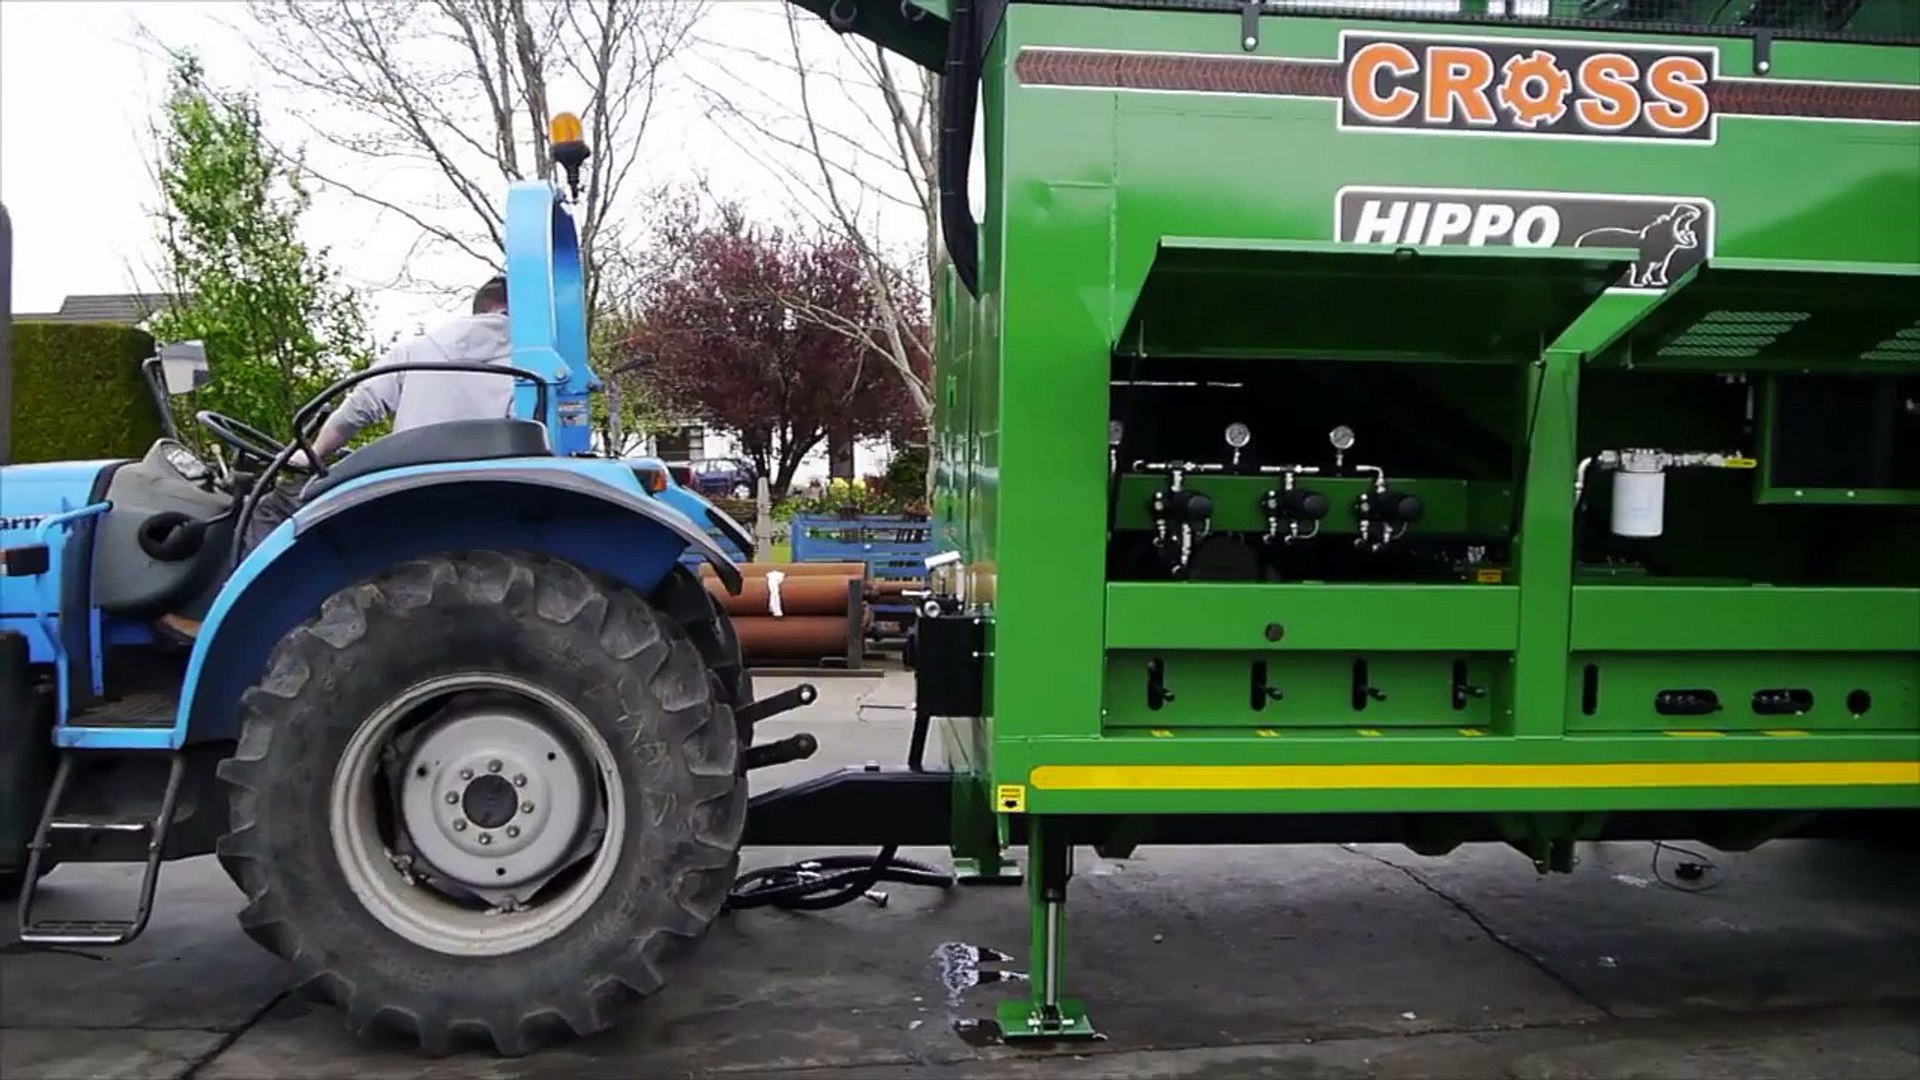 Hippo - 2 Beet Washer... Cross Agricultural Engineering